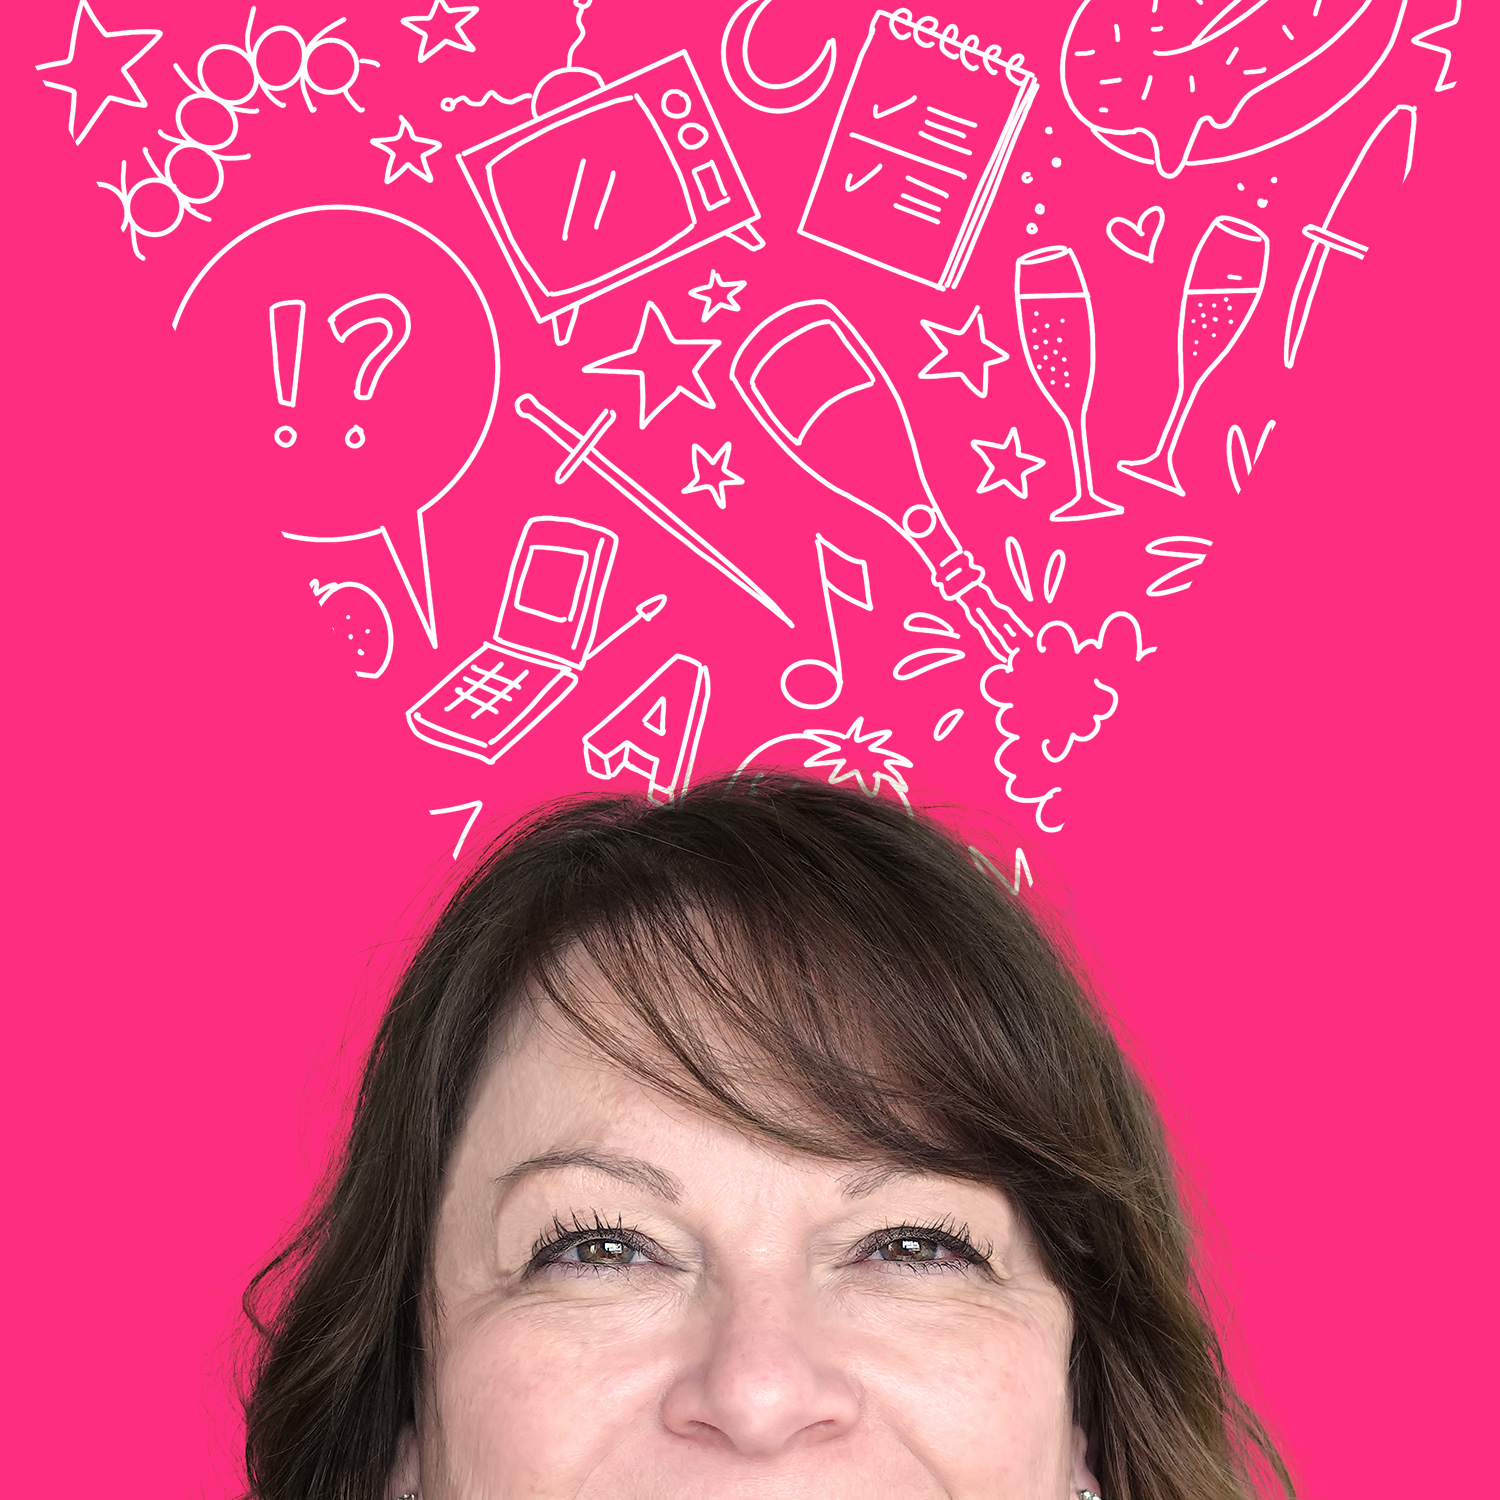 """Jayne Caple - MANAGING DIRECTOR""""If this was the A-Team, I'd be Hannibal because I love it when a plan comes together. With over 25 years of managing publishing teams, my job is to understand what your business needs.""""Email Jayne: jayne@vividimagination.studio"""